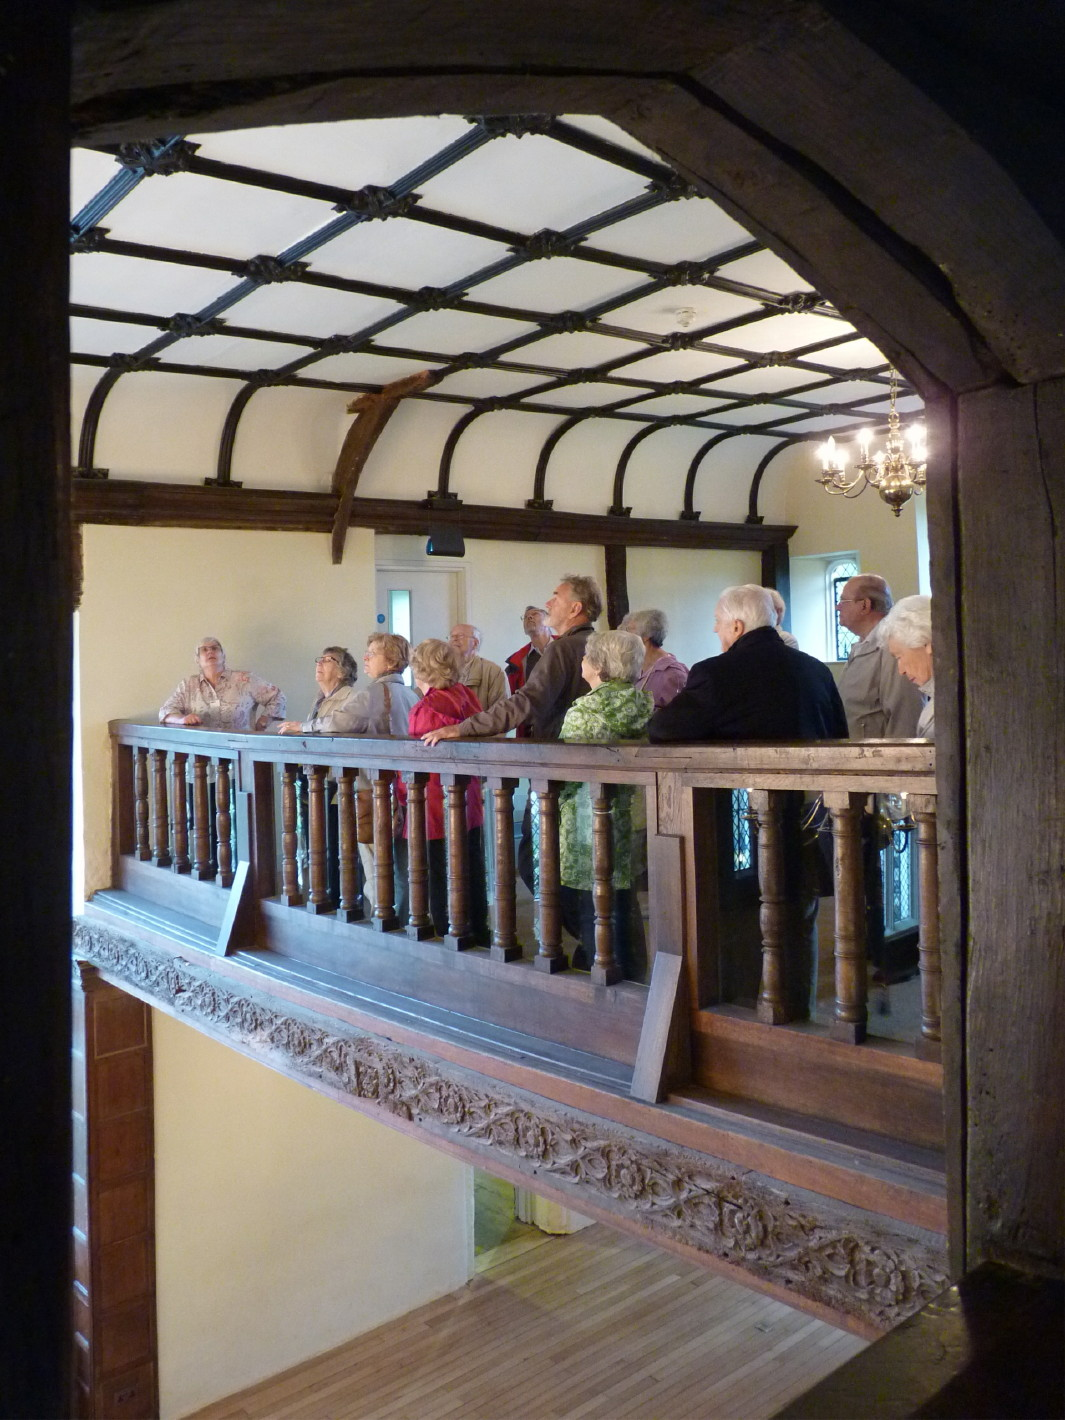 Hall Place, the minstrels' gallery